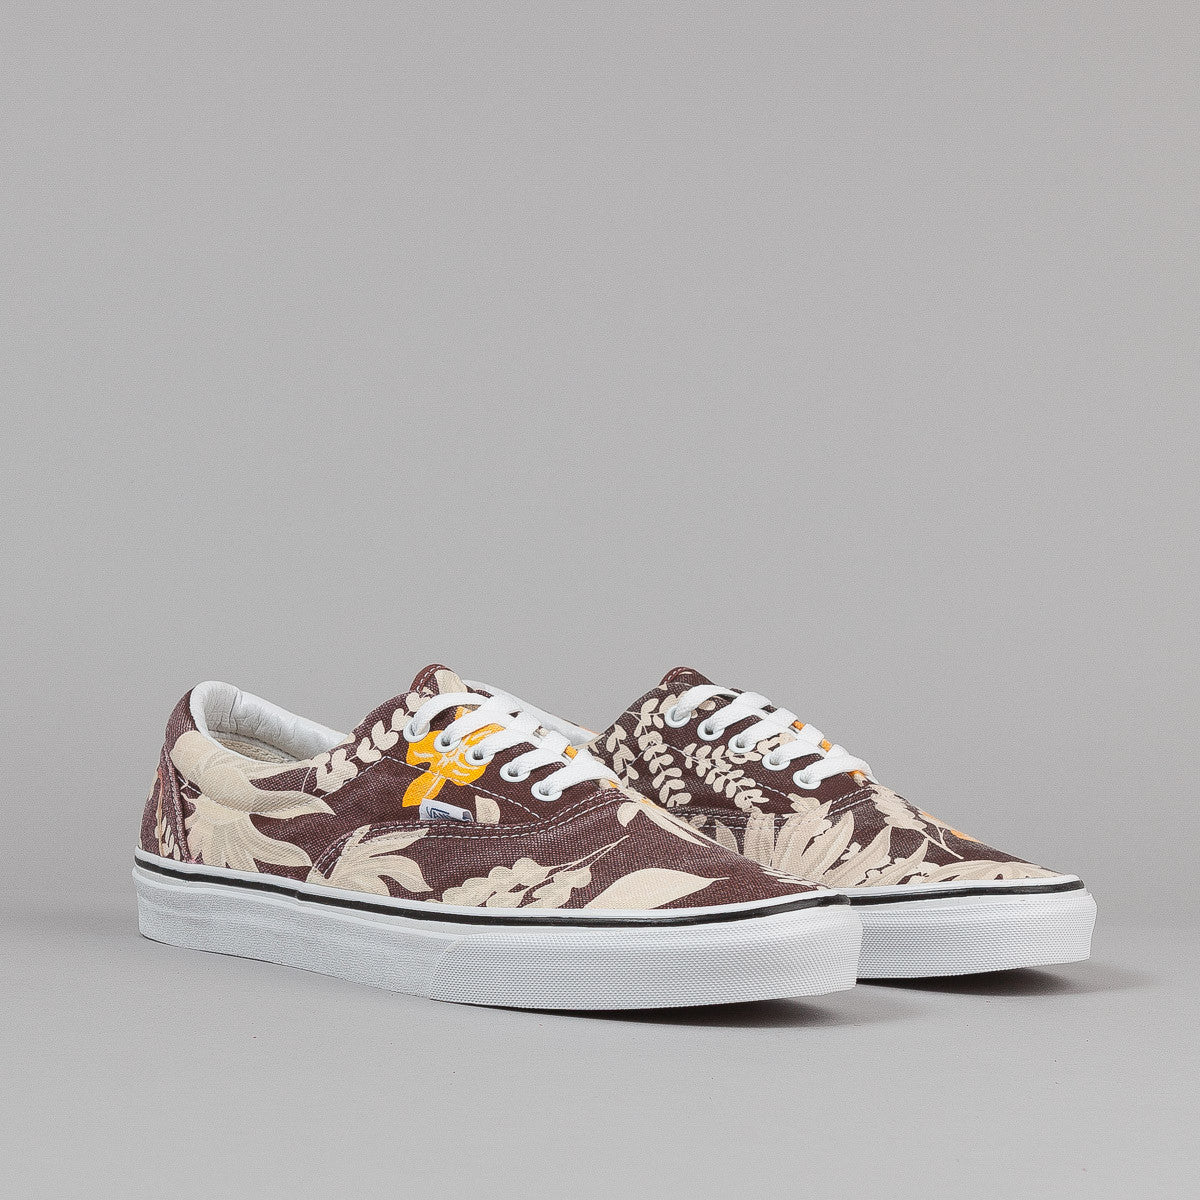 Vans Era Shoes - (Van Doren) Maroon / Hawaiian